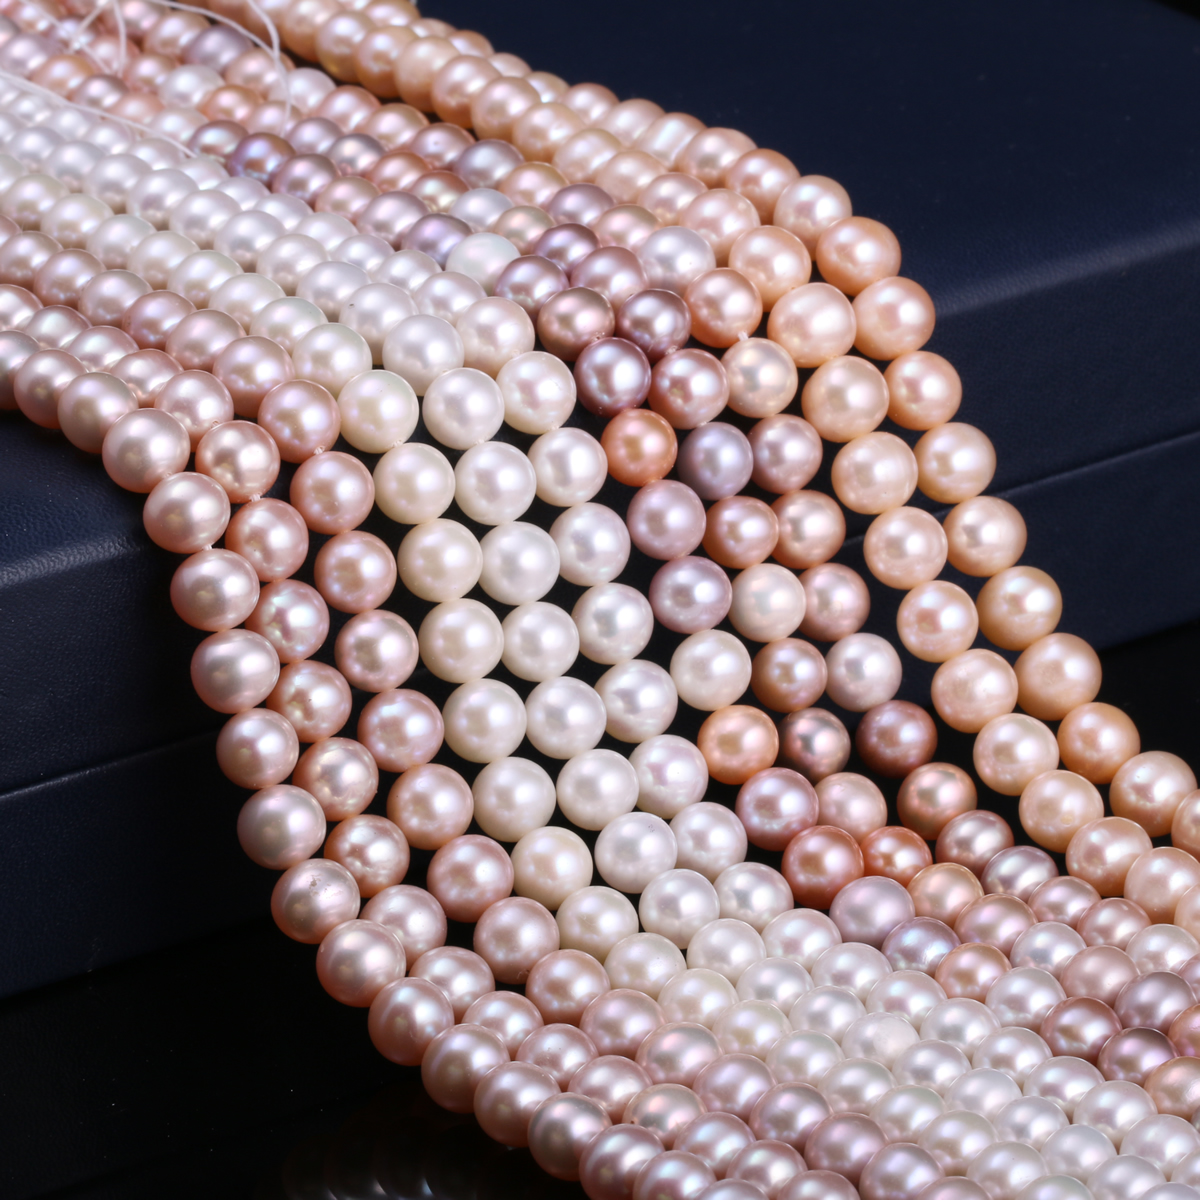 Natural Freshwater Cultured Pearls Beads Round 100% Natural Pearls for Jewelry Making Necklace Bracelet 15 Inches Size 7-8mm long 80 inches 7 8mm white akoya cultured pearl necklace beads hand made jewelry making natural stone ye2077 wholesale price